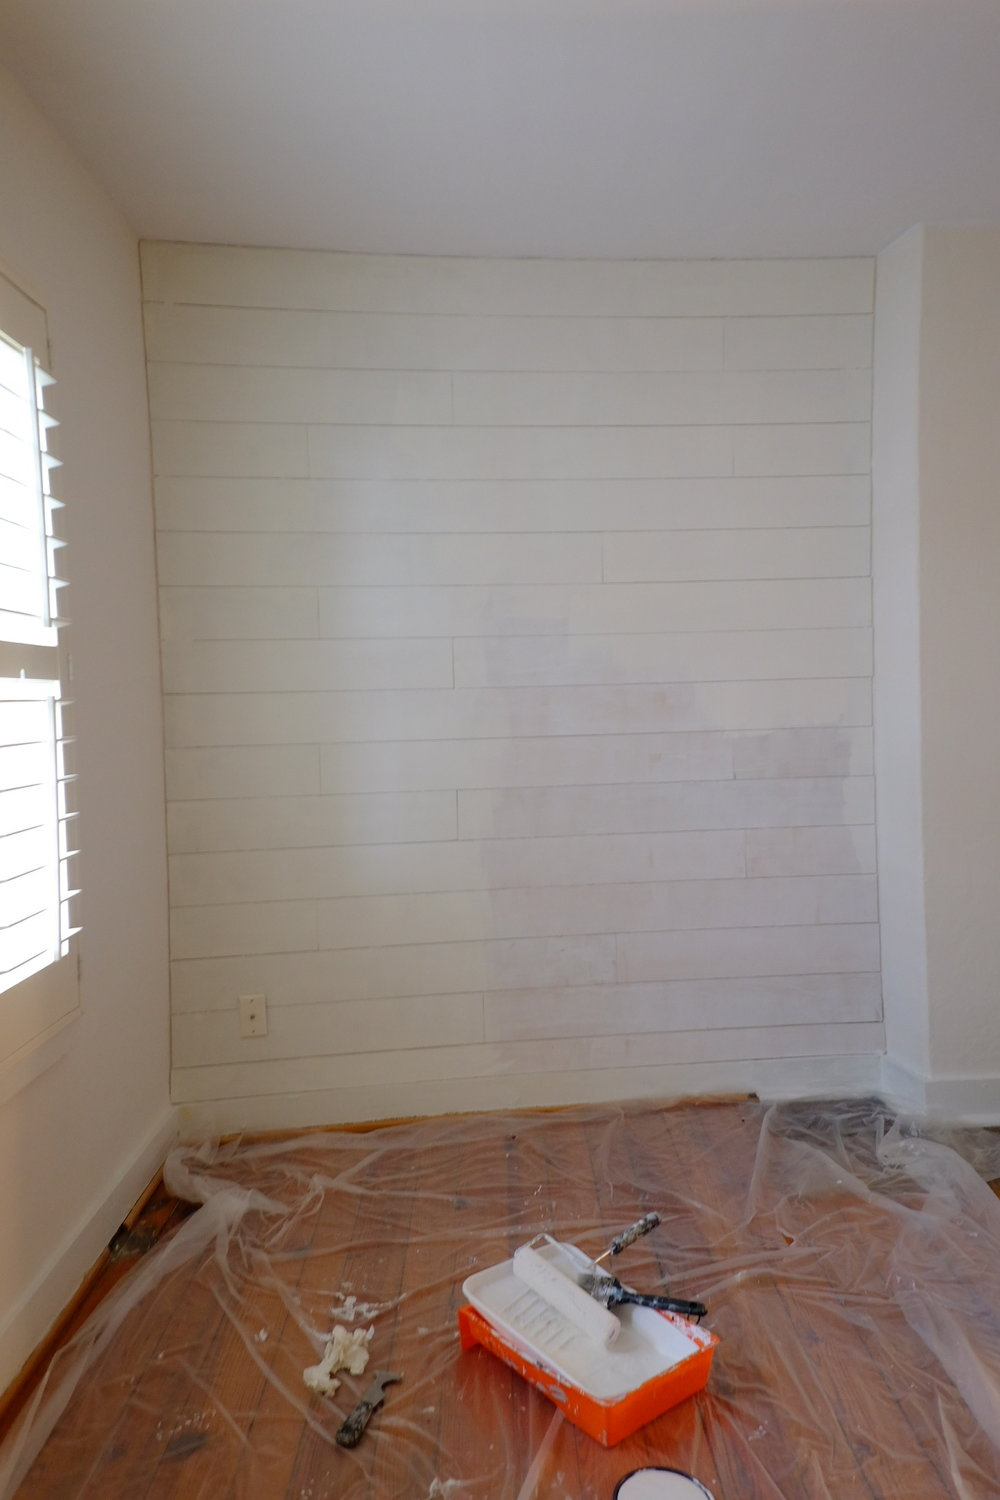 Added faux shiplap to the back wall to cover up the plaster.